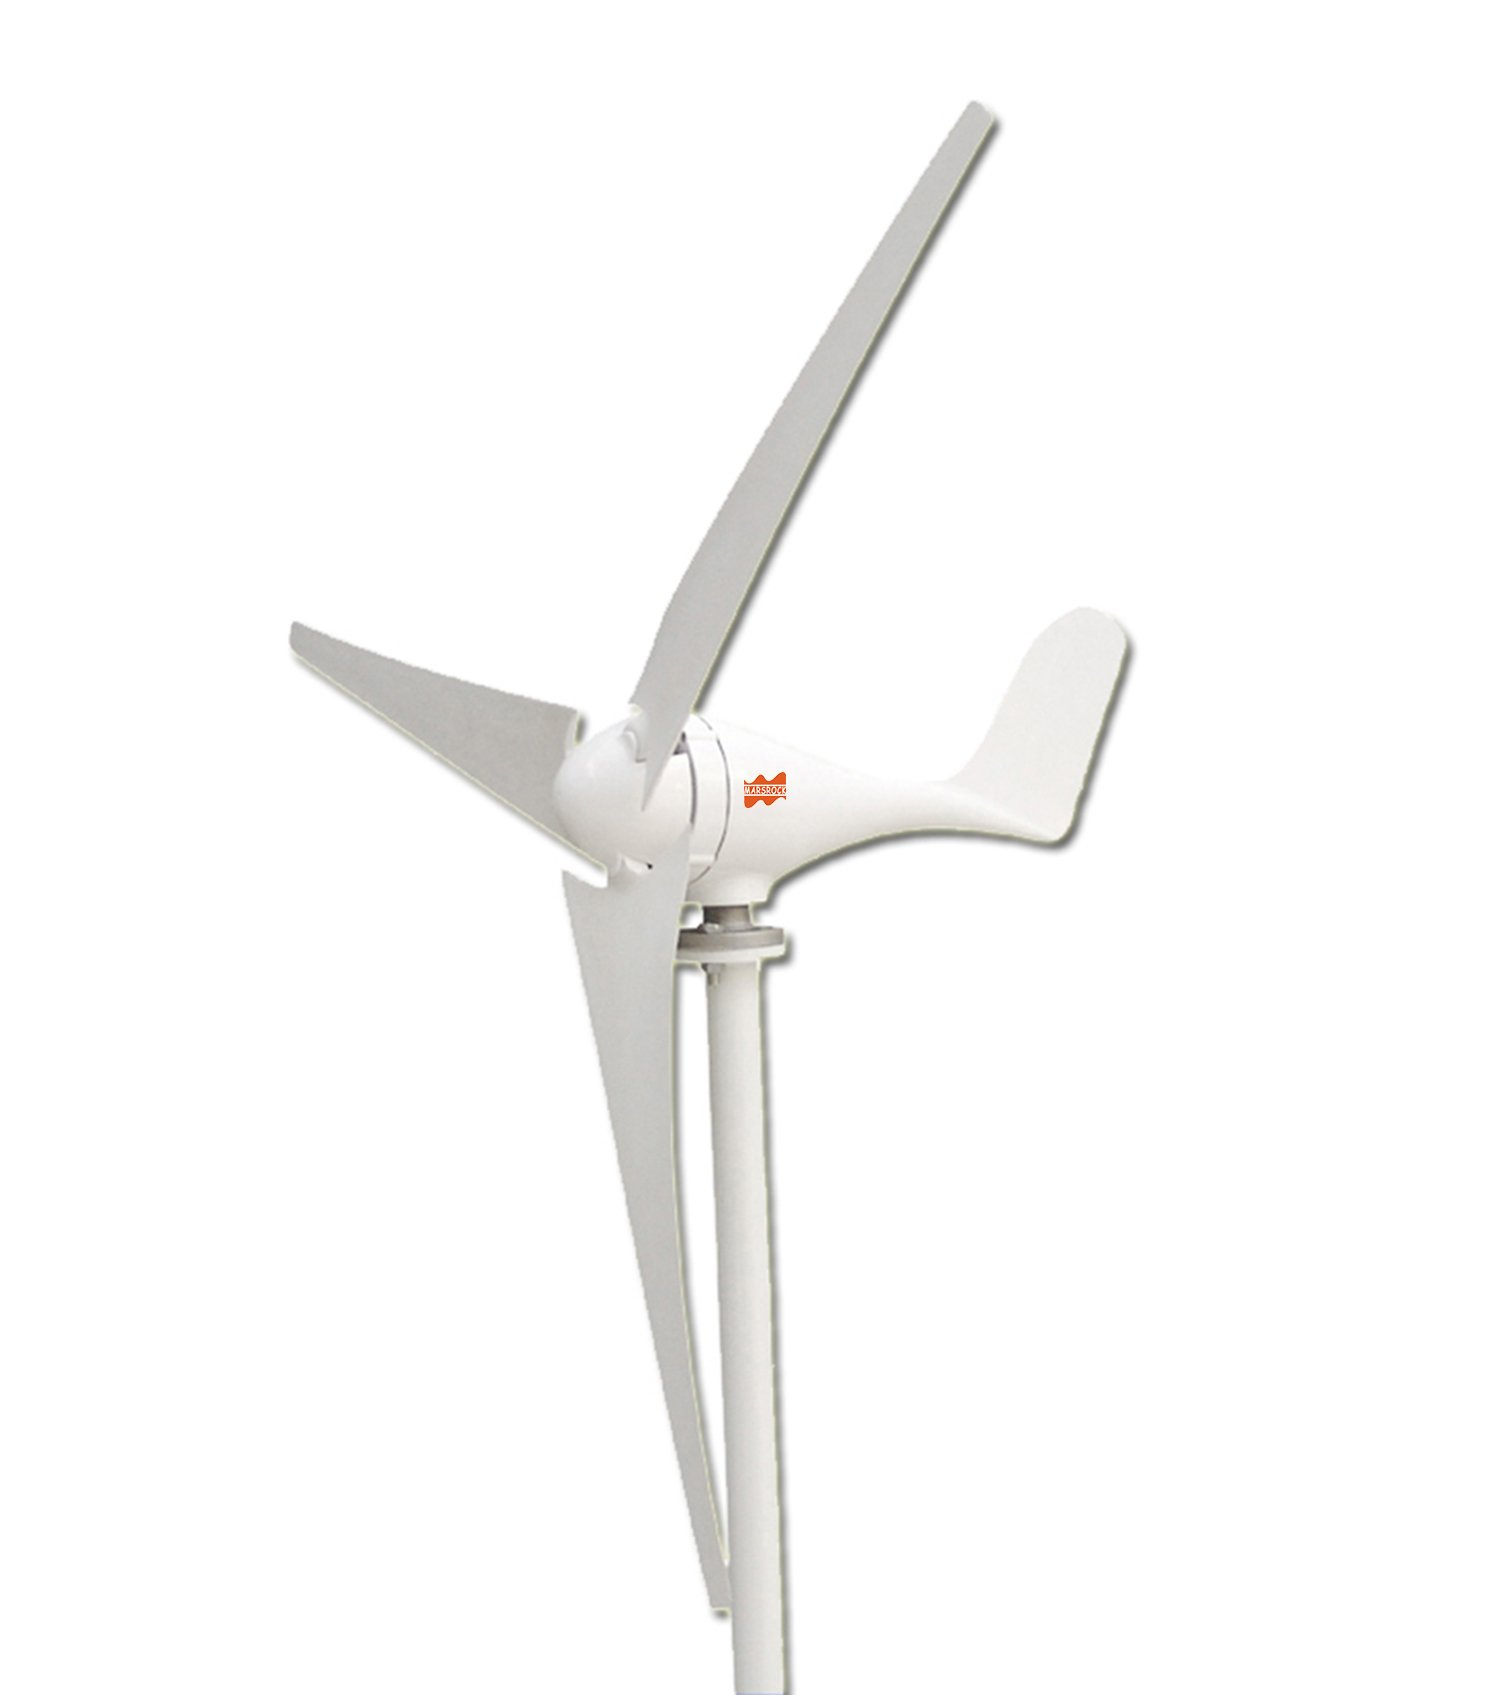 MarsRock Small Wind Turbine Generator AC 12V or 24V, 100W 200W 300W 400W Economy Windmill for wind solar hybrid system 2m/s Start Wind Speed 3 blades(200Watt 24Volt)